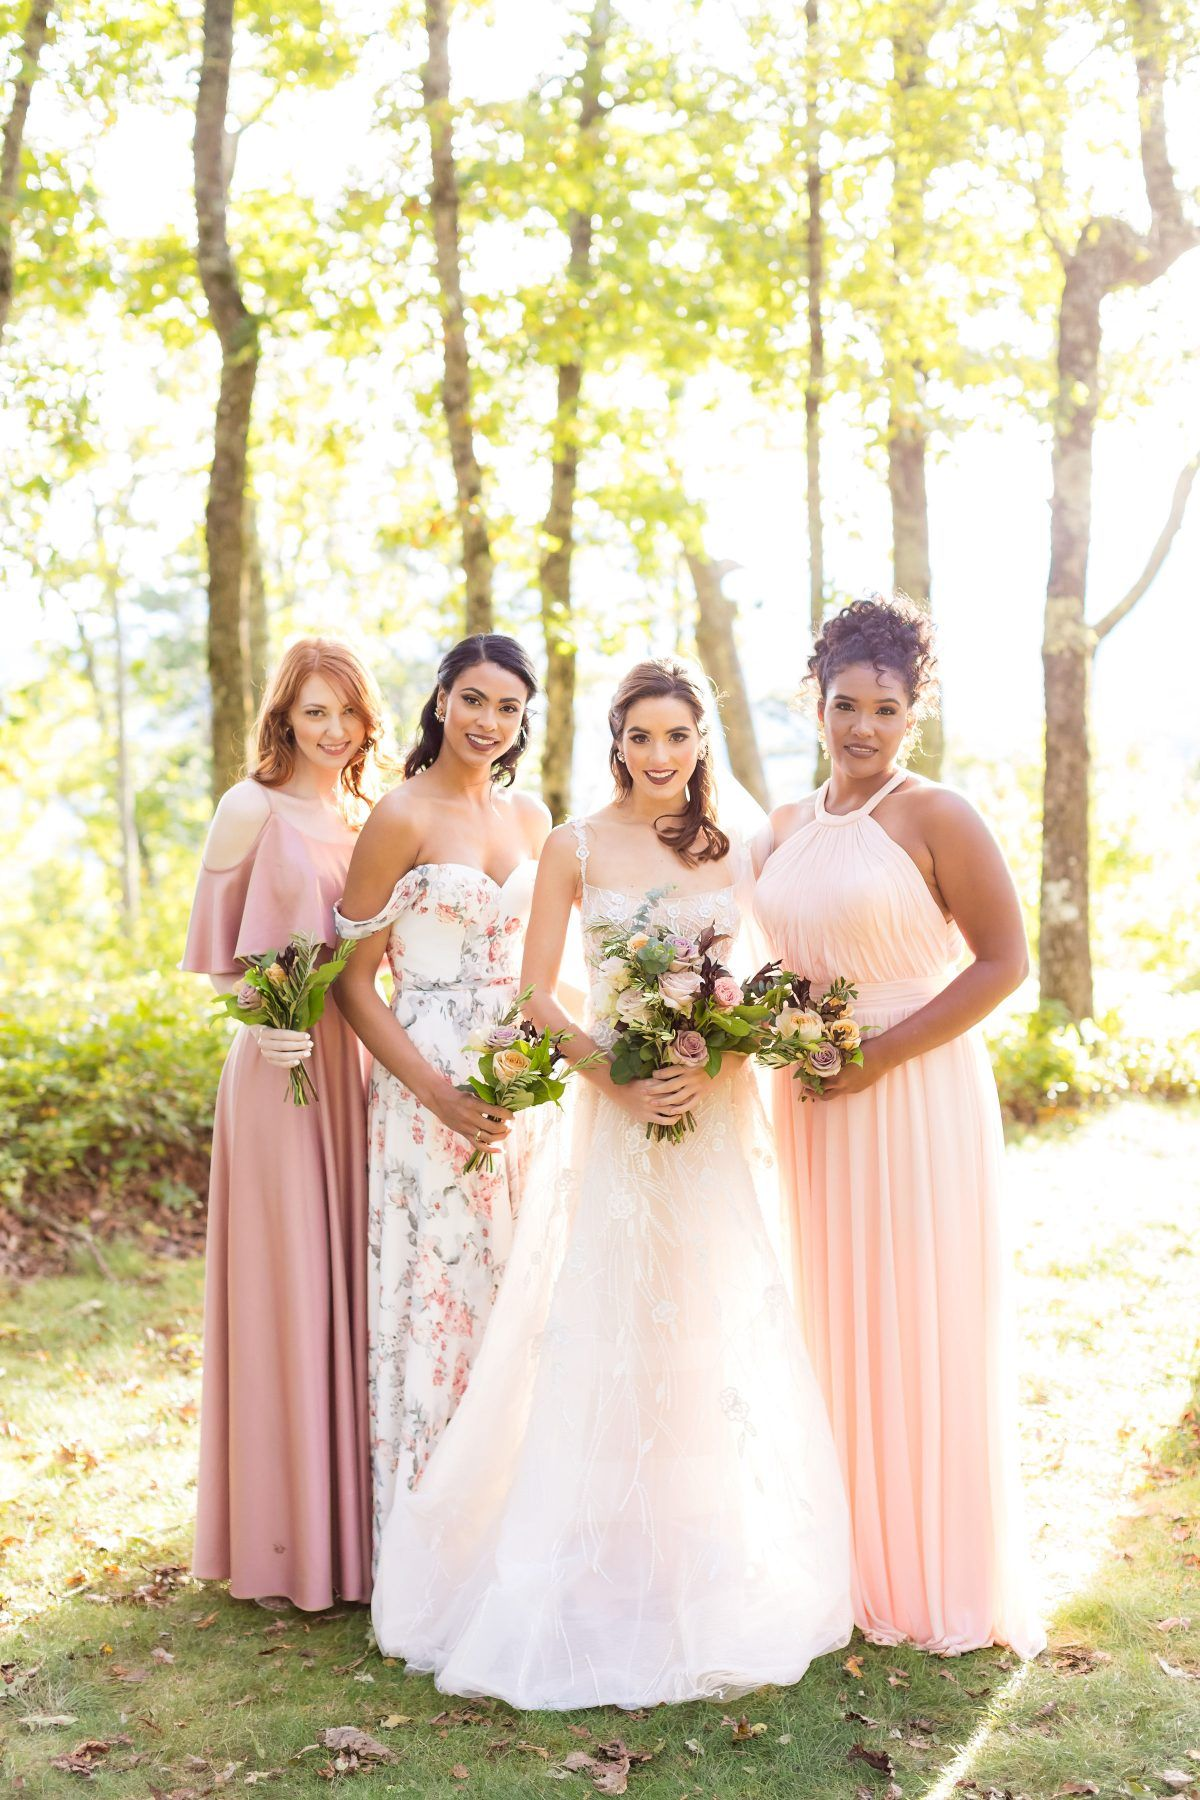 517cfe5e6e6c Cheap blush bridesmaid dresses that are under  200 available at Kleinfeld  Blush Bridesmaid Dresses